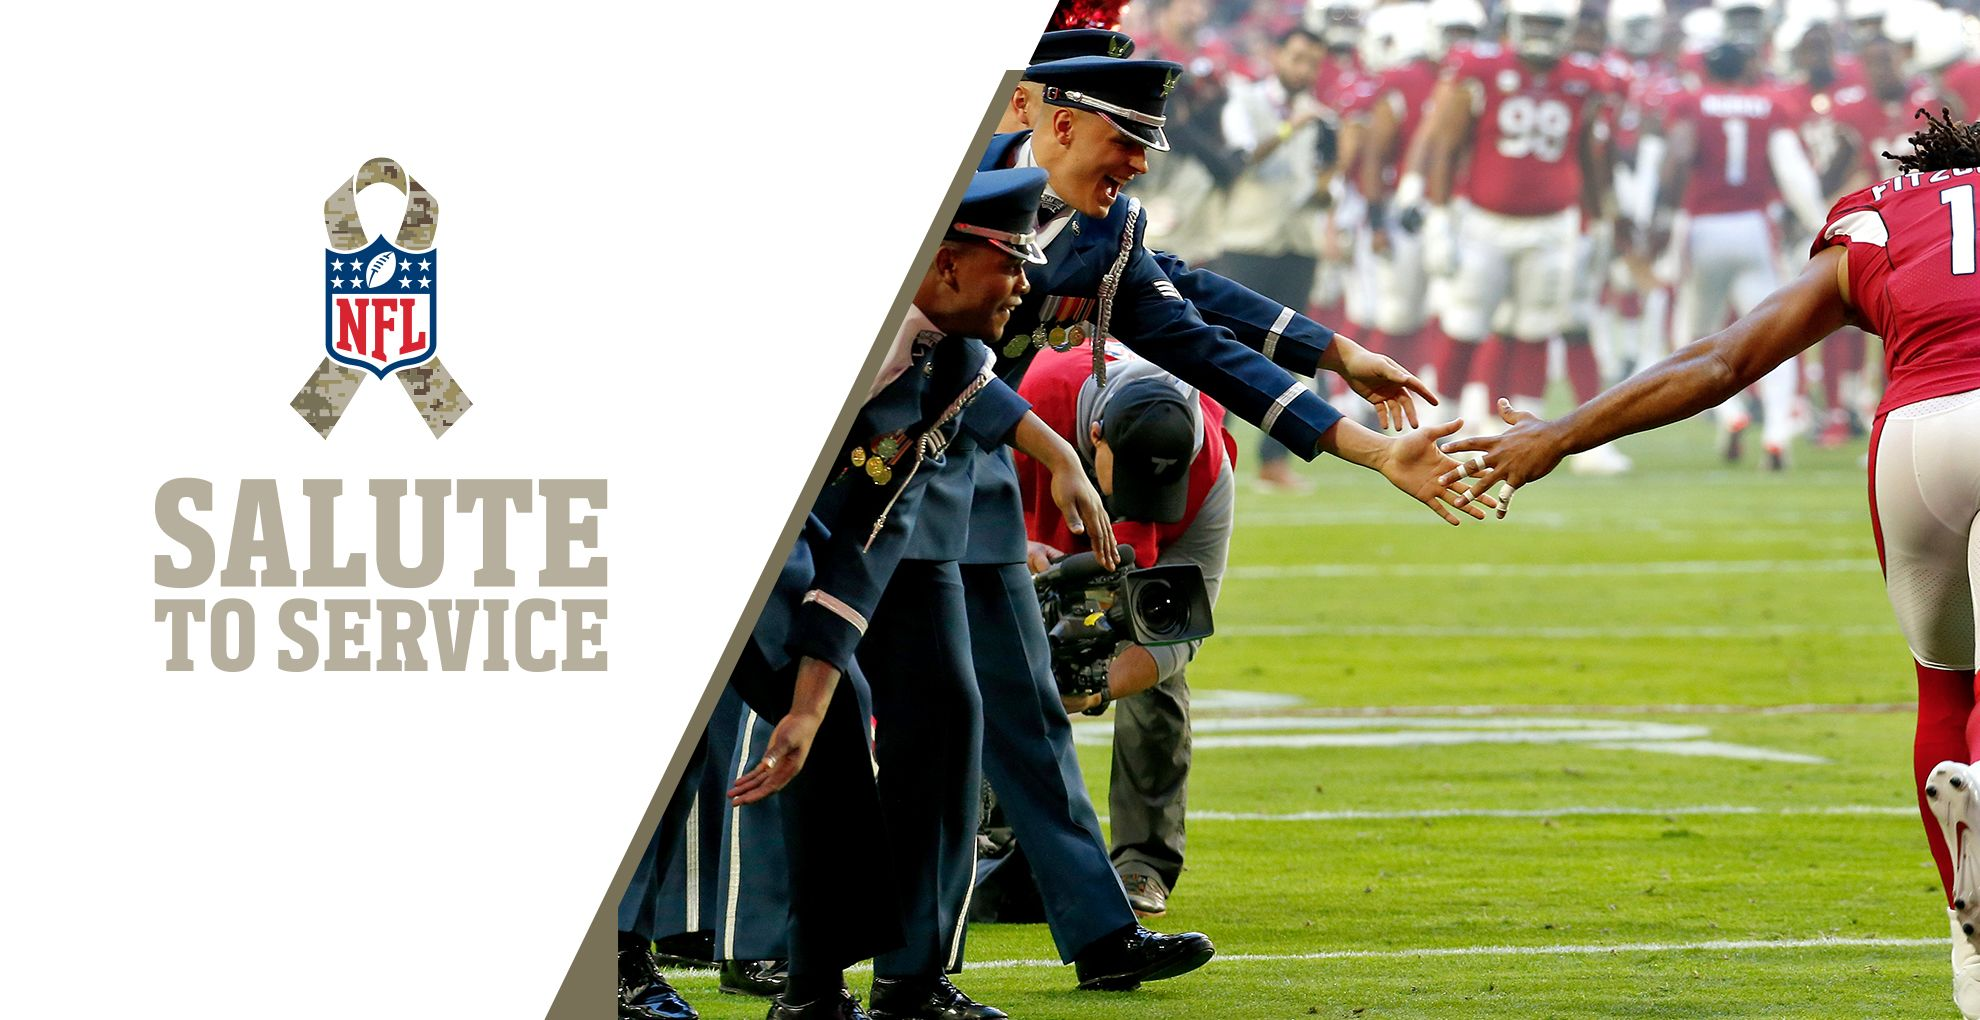 Salute to Service is the League's year-round effort to honor, empower, and connect with active duty service members, veterans, and their families. During November, the NFL will recognize and honor the military community through special moments, both in-person and virtually, at NFL games and events.